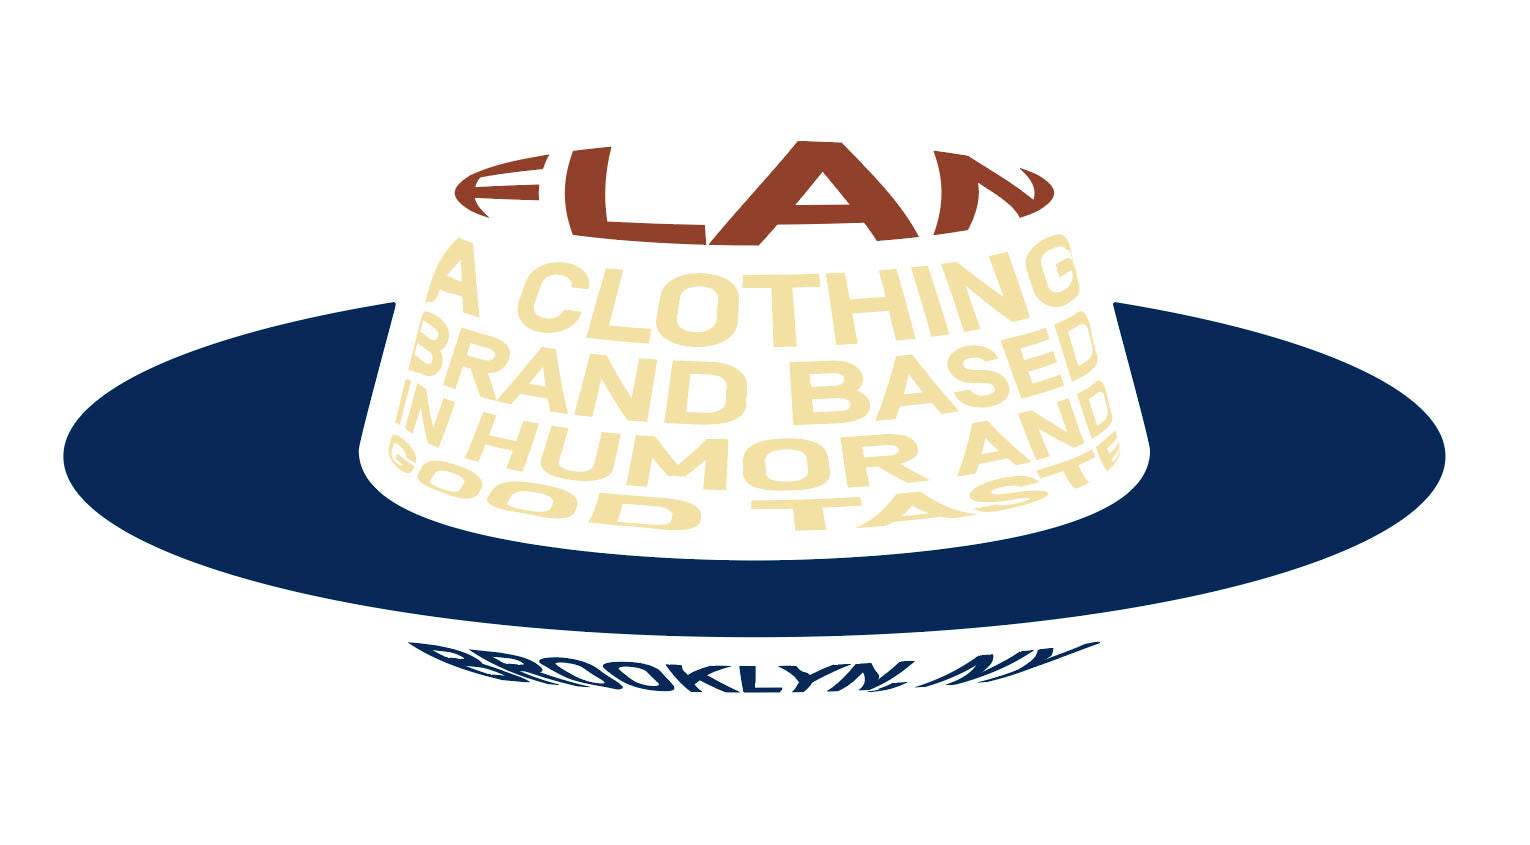 Flan — a clothing brand based in humor and good taste, in Brooklyn, NY